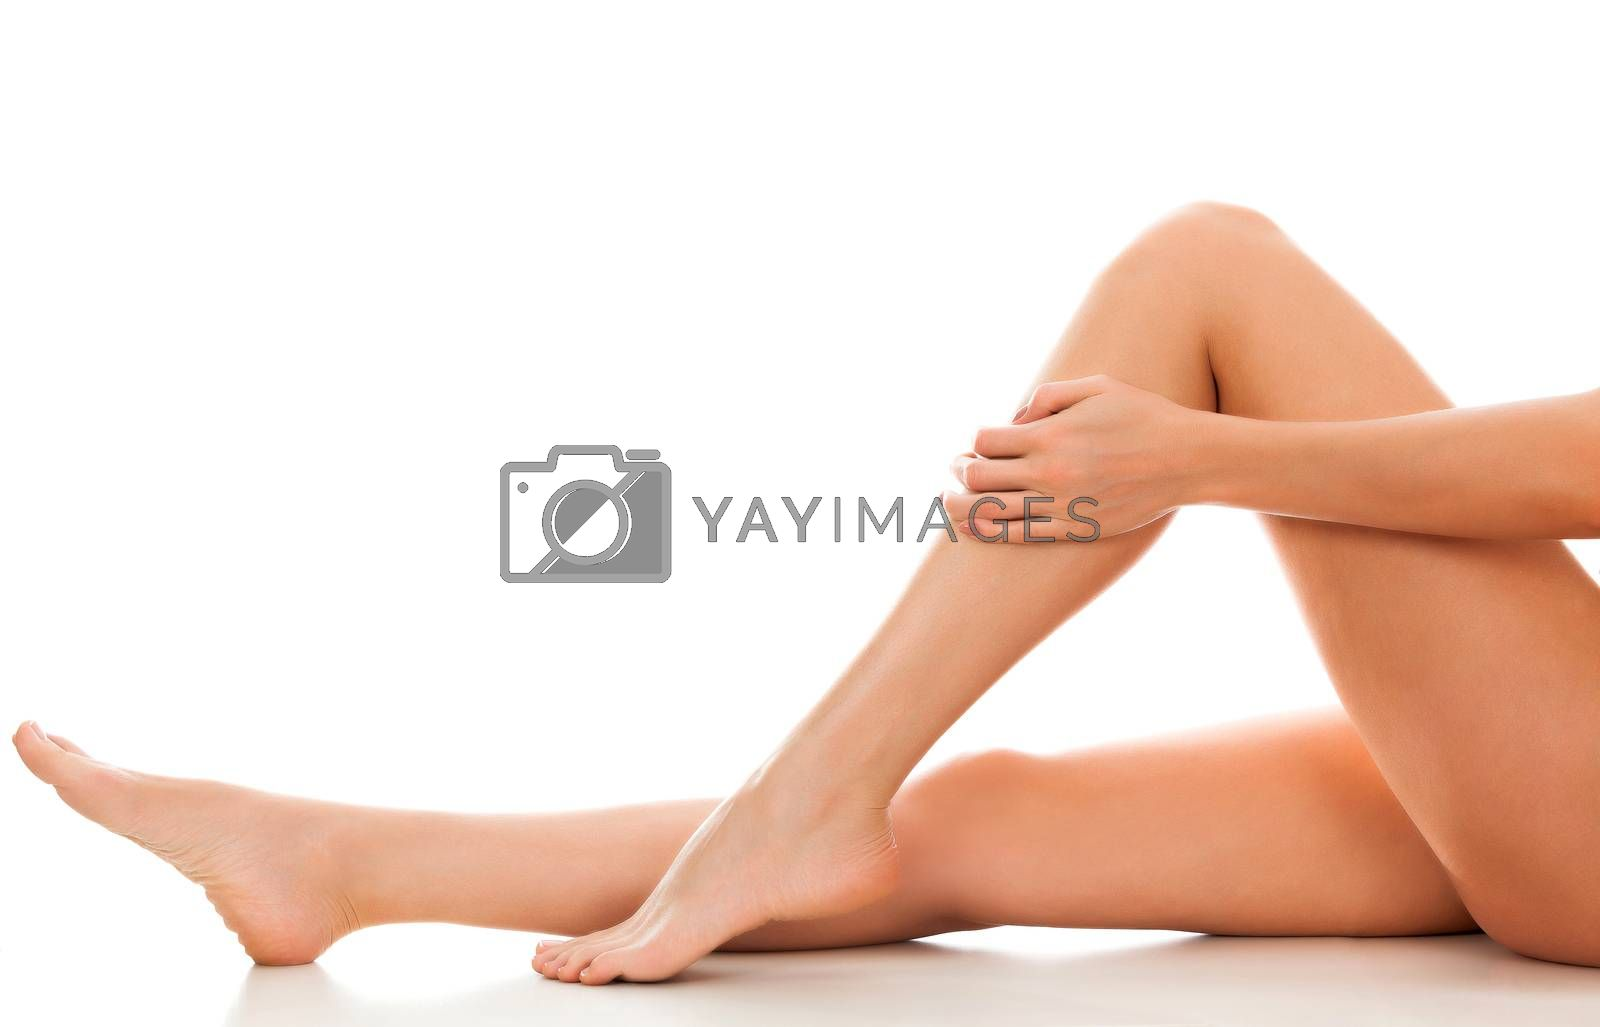 Beautiful smooth and shaved woman's legs. Isolated on white background. Skincare treatment concept